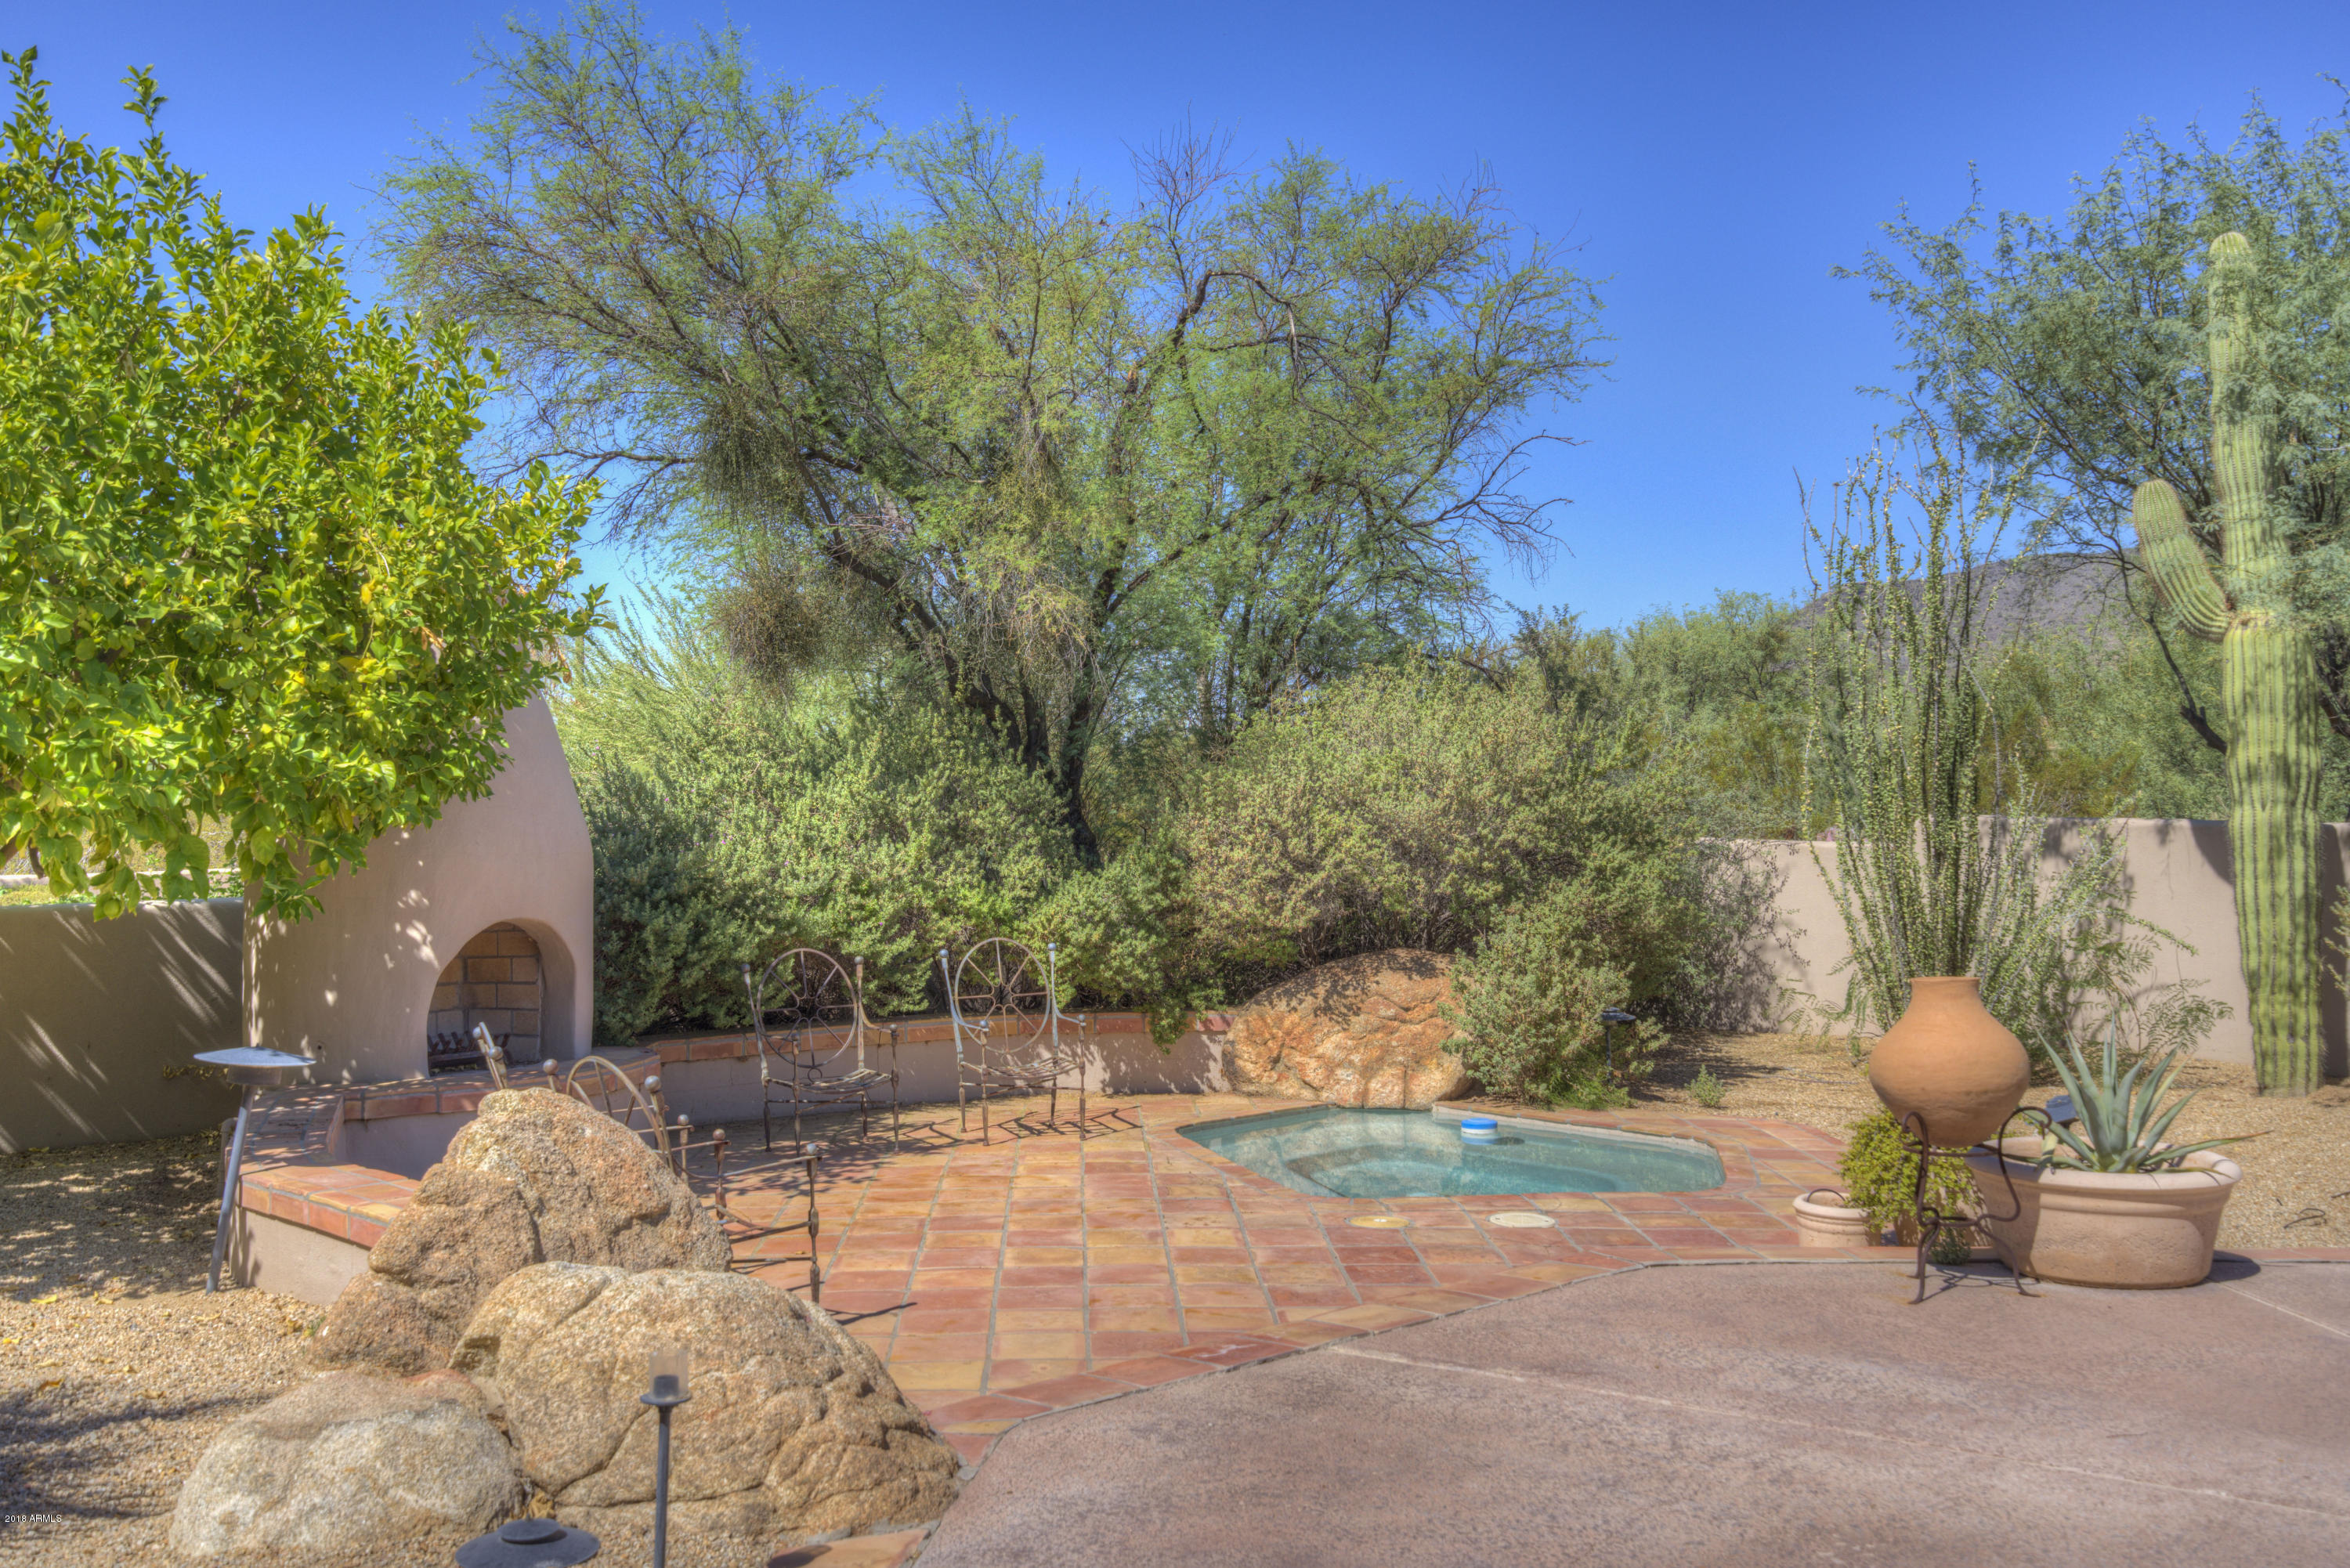 MLS 5826196 7402 E HIGH POINT Drive, Scottsdale, AZ 85266 Scottsdale AZ The Boulders